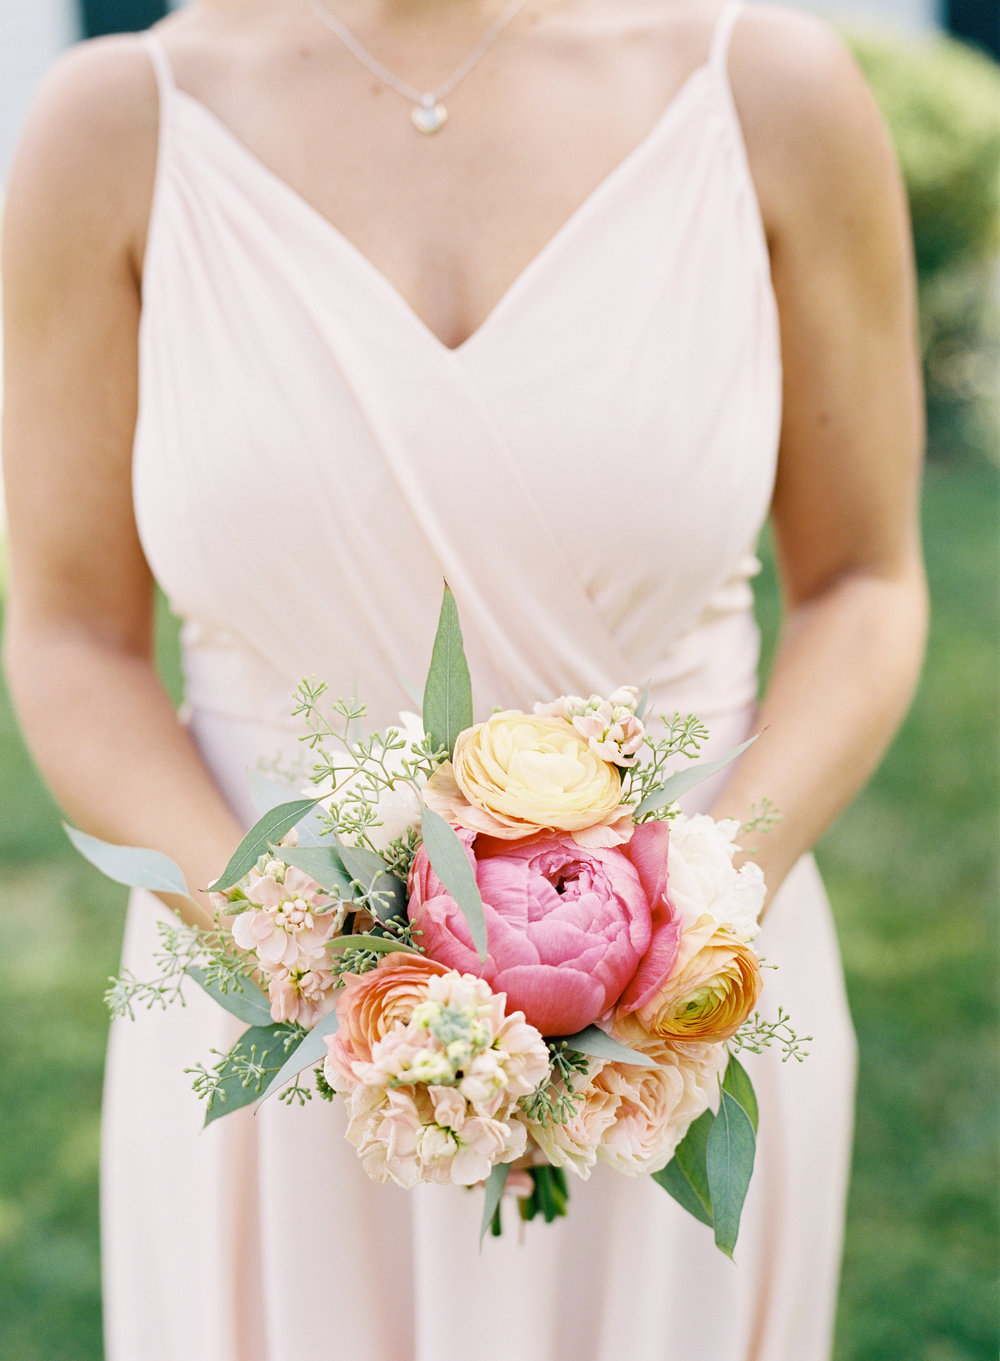 Flowers by Fleur Inc, Coordination by SQN Events, Photography by Kina Wicks